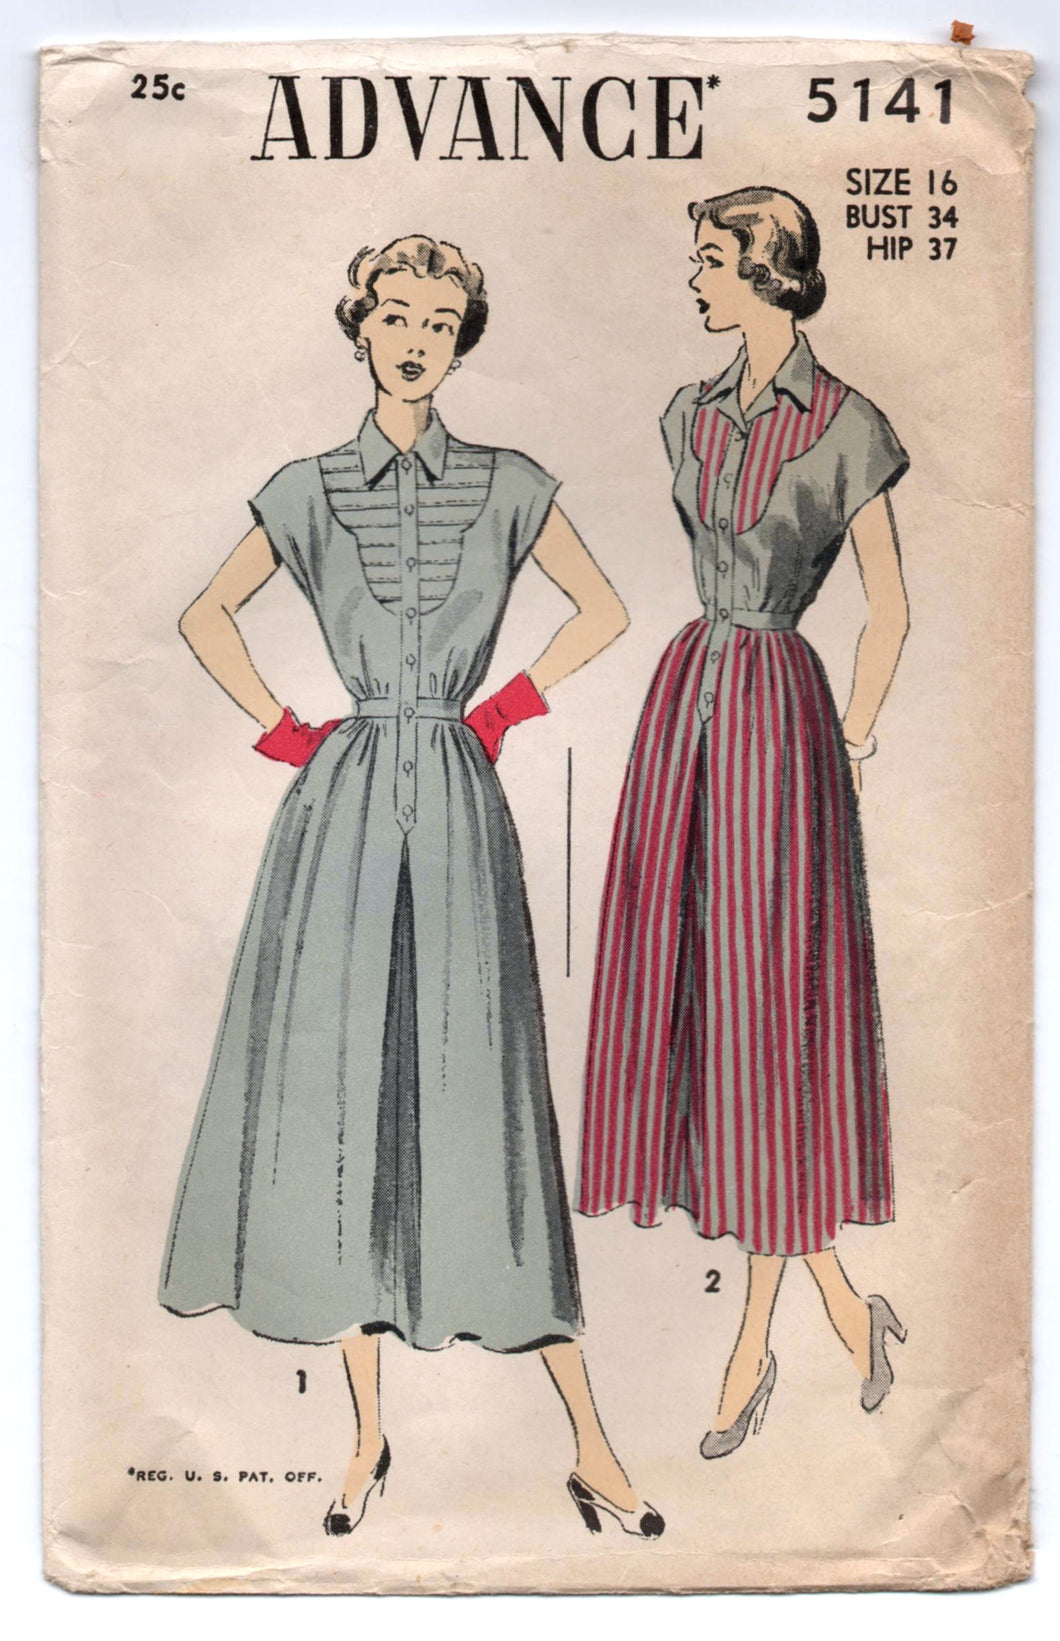 1950's Advance One Piece Dress Pattern with Contrast front and A line skirt - Bust 34